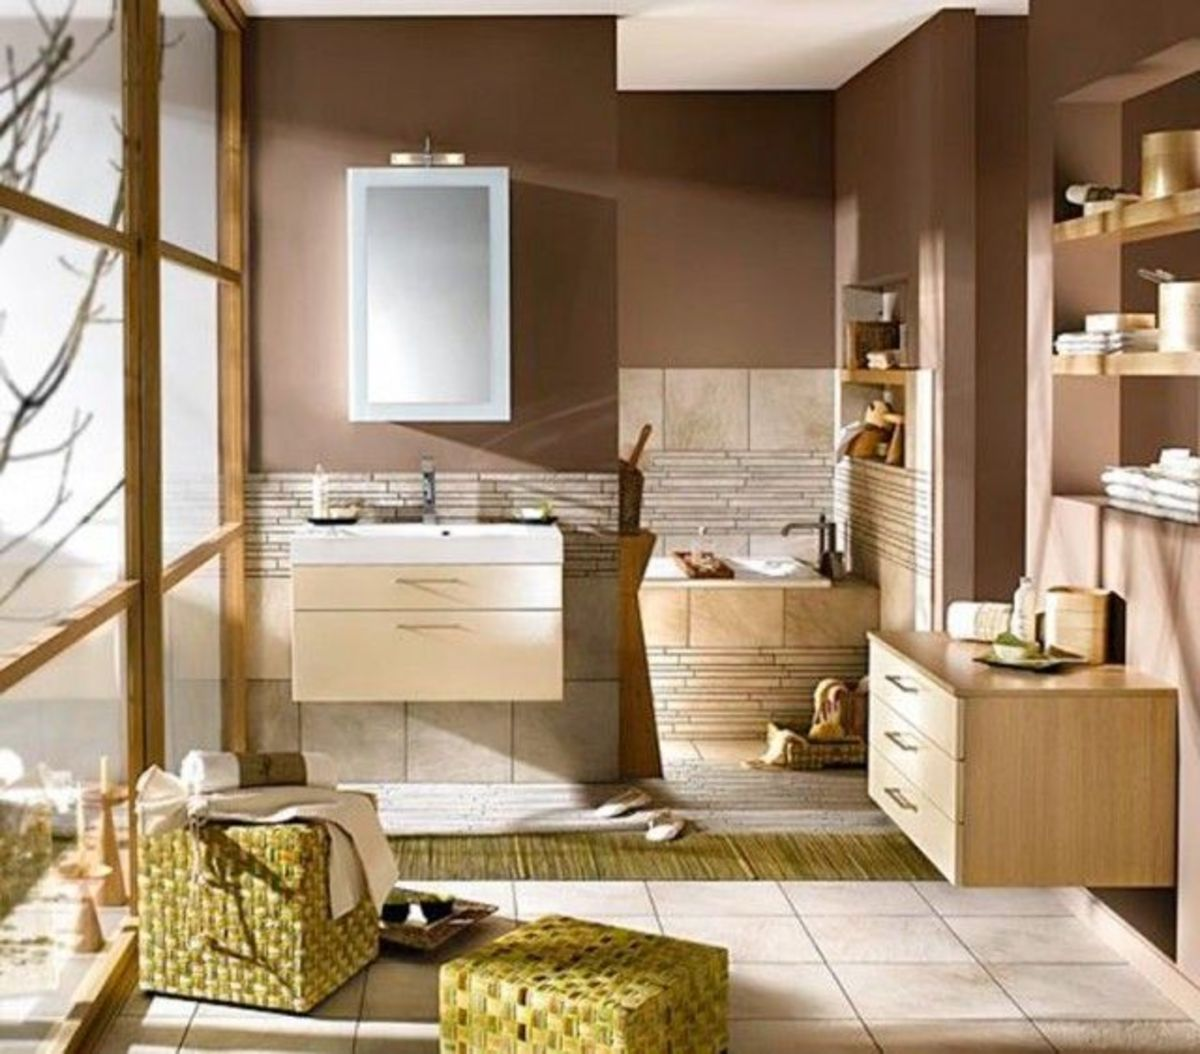 Look to earth Feng Shui to make your home fashionable for a Taurus personality.